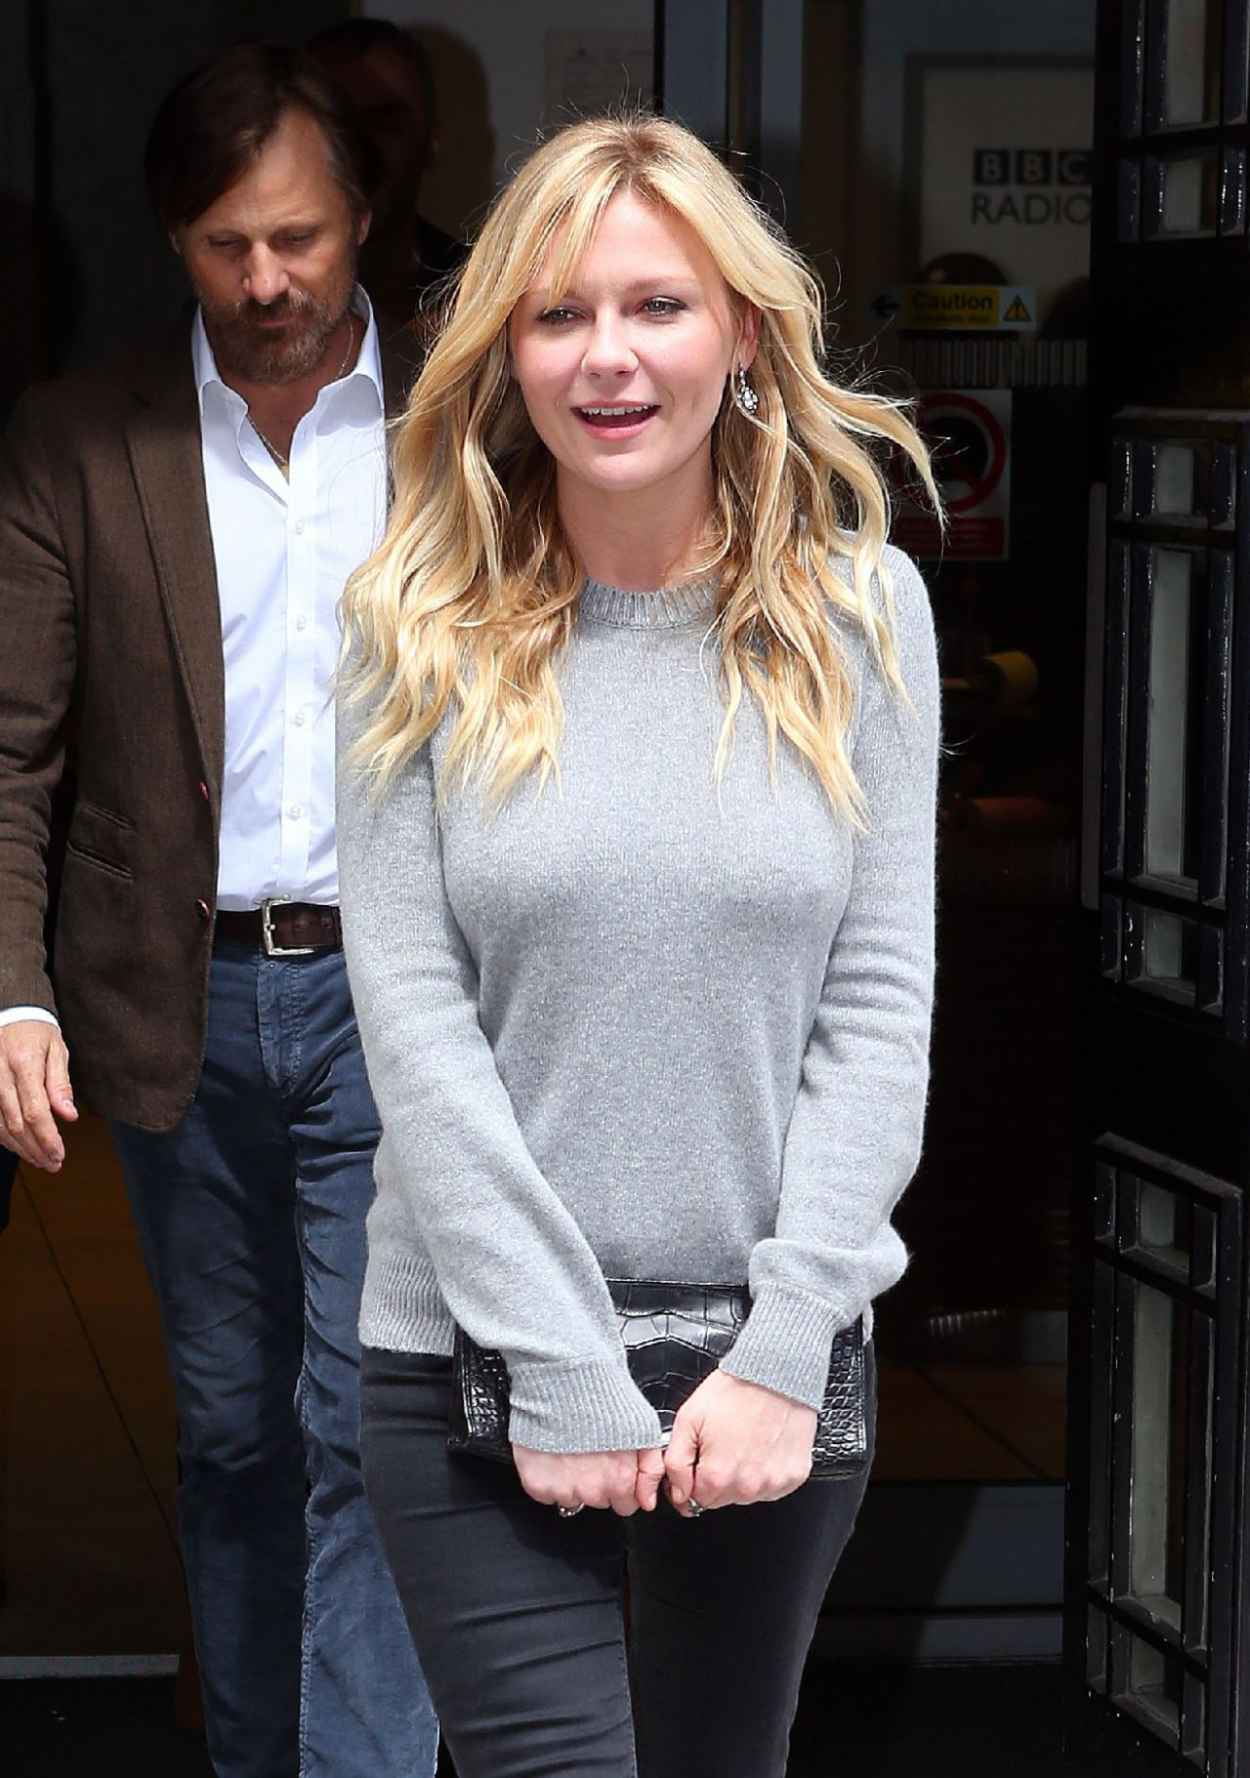 Kirsten Dunst Casual Style - Leaving the BBC Radio 2 Studio in London - May 2015-1